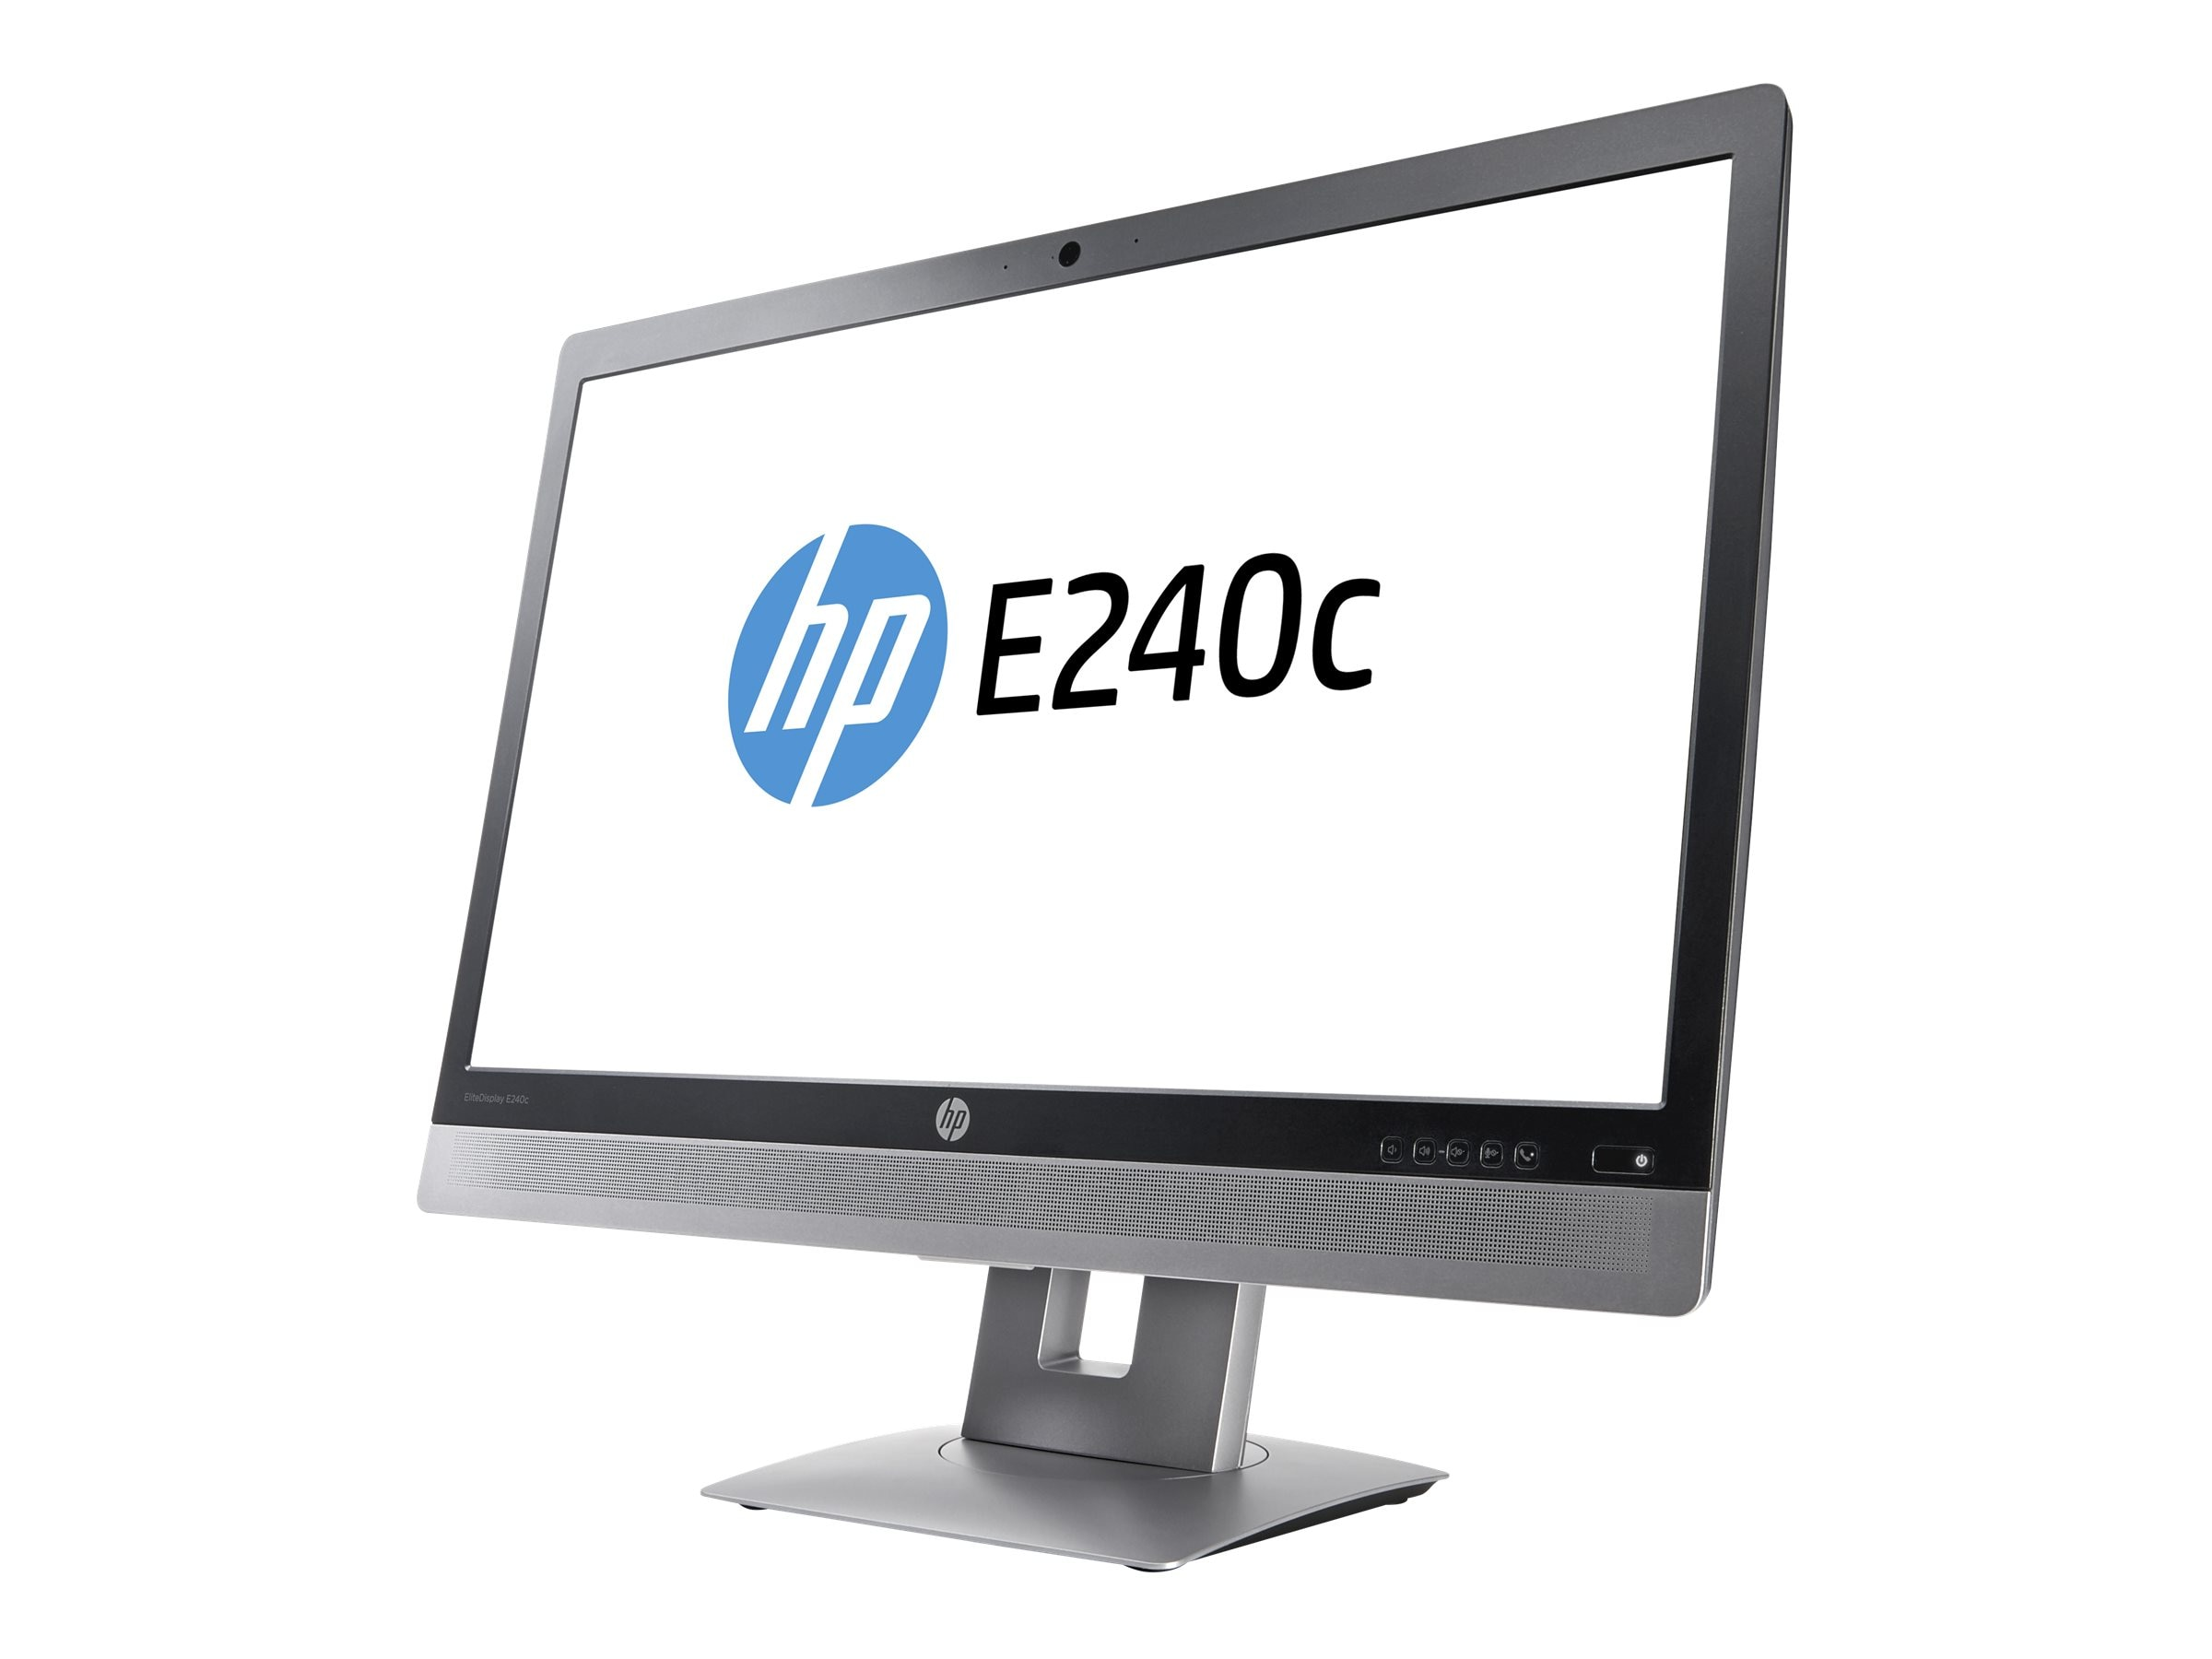 HP 23.8 E240C Full HD LED-LCD Monitor with Webcam, Black, M1P00A8#ABA